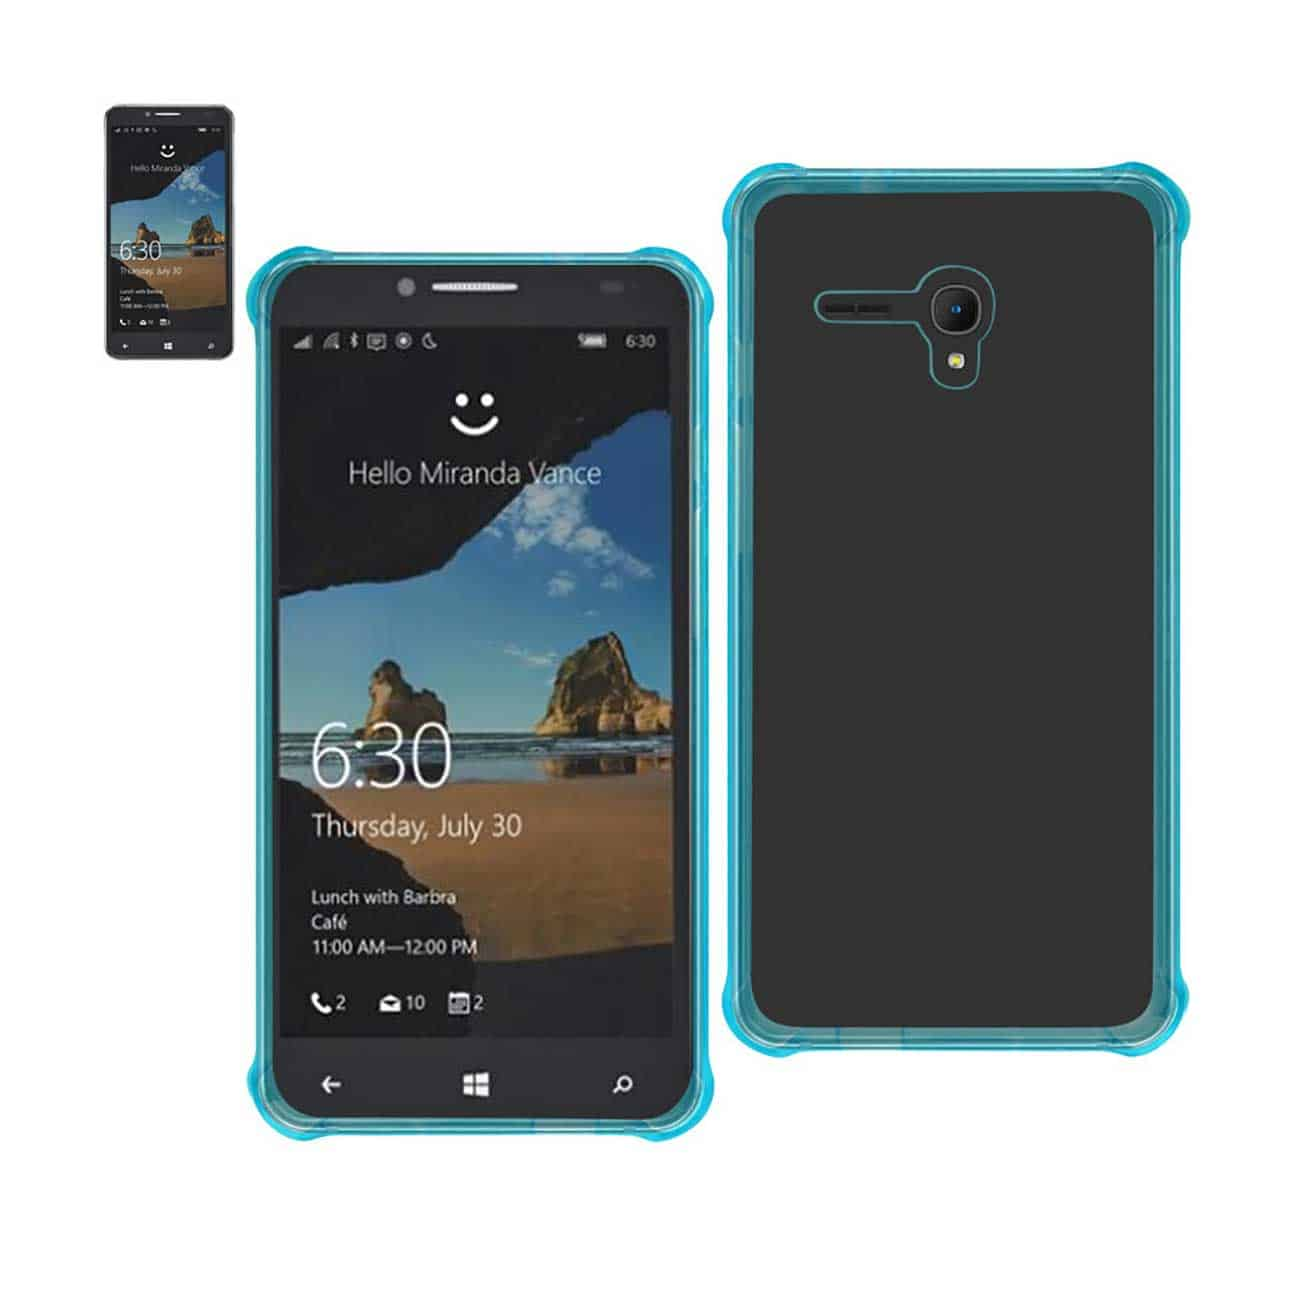 ALCATEL ONE TOUCH FIERCE XL MIRROR EFFECT CASE WITH AIR CUSHION PROTECTION IN CLEAR NAVY